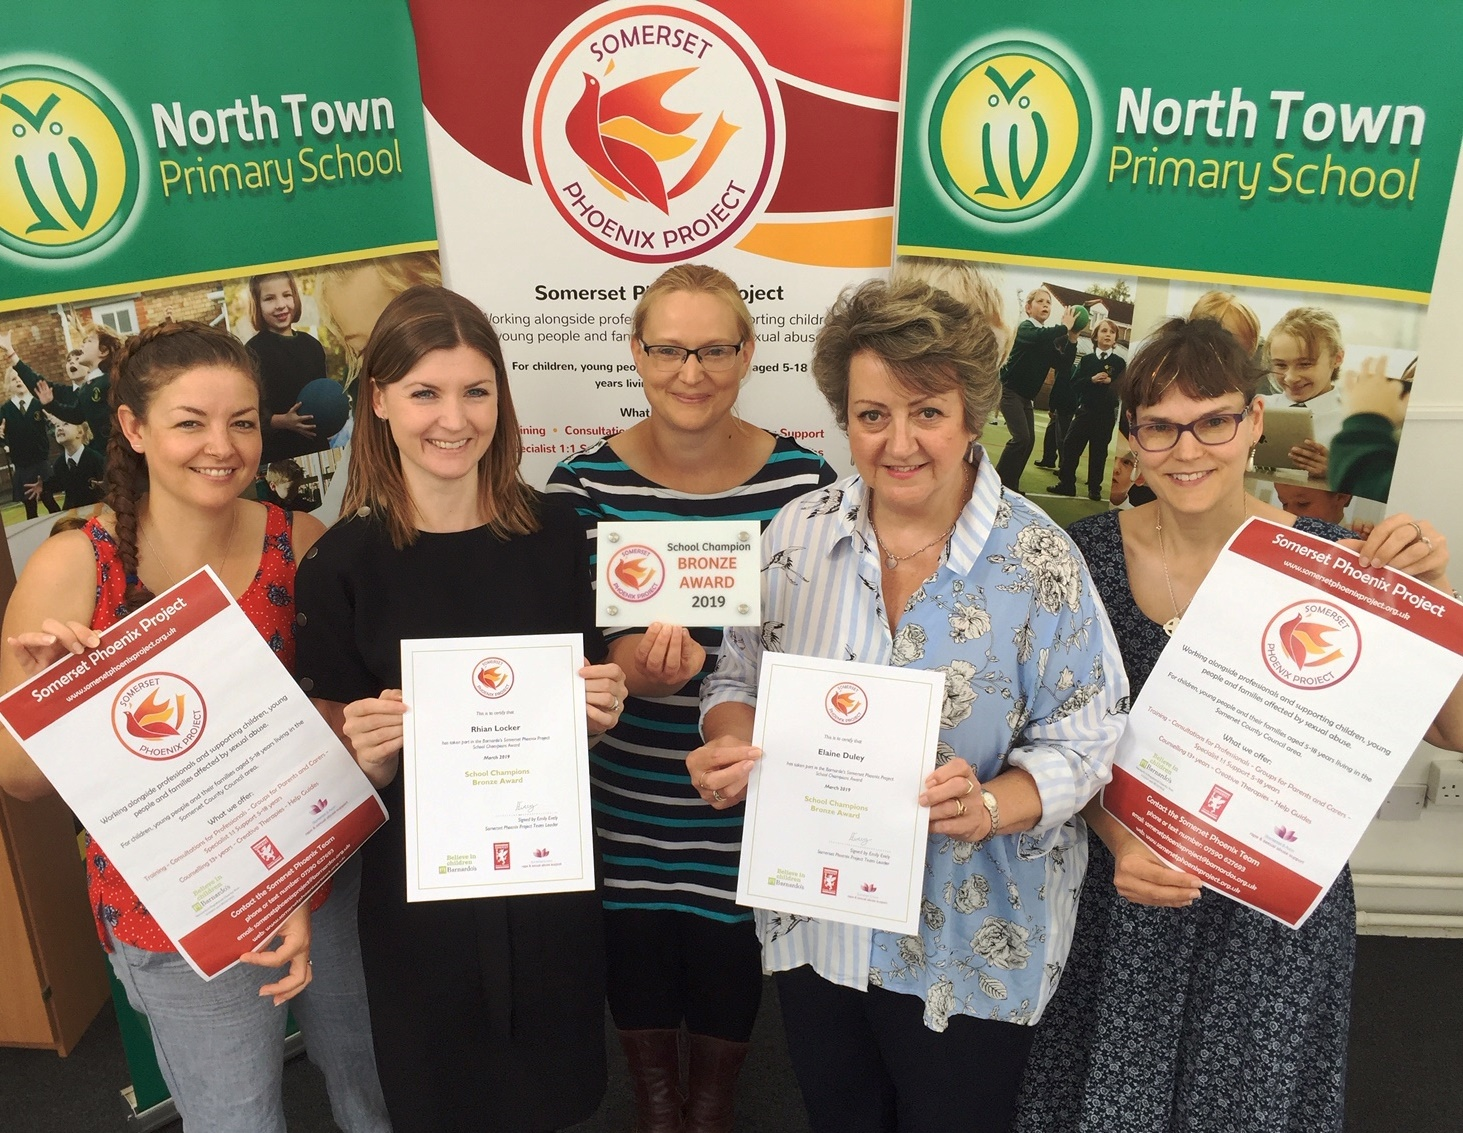 School Champion Award for North Town Primary